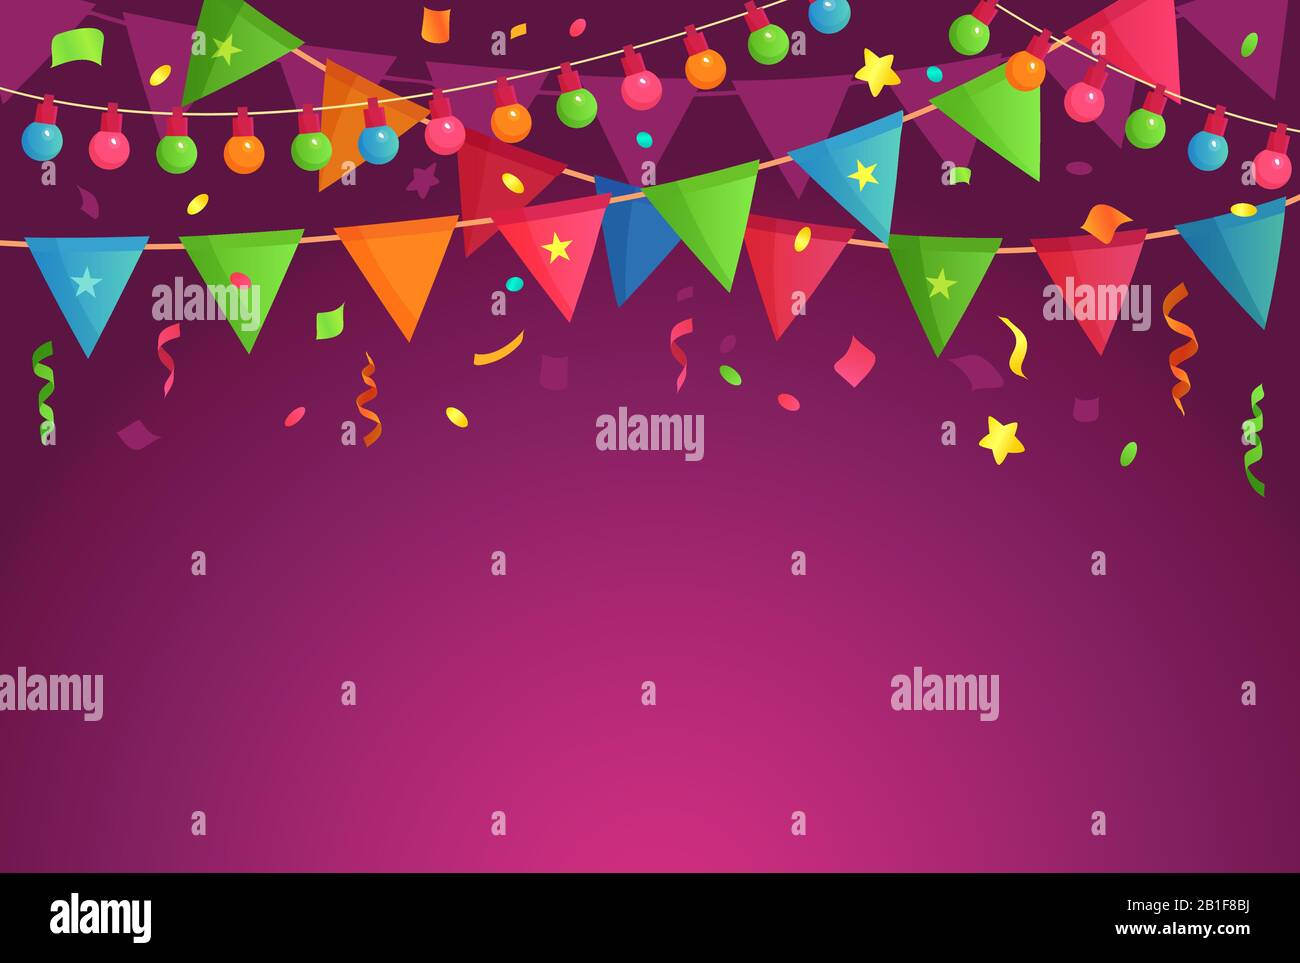 Cartoon Decoration Party Celebrate Birthday Flags With Confetti Festival Background And Fun Event Decorations Vector Illustration Stock Vector Image Art Alamy